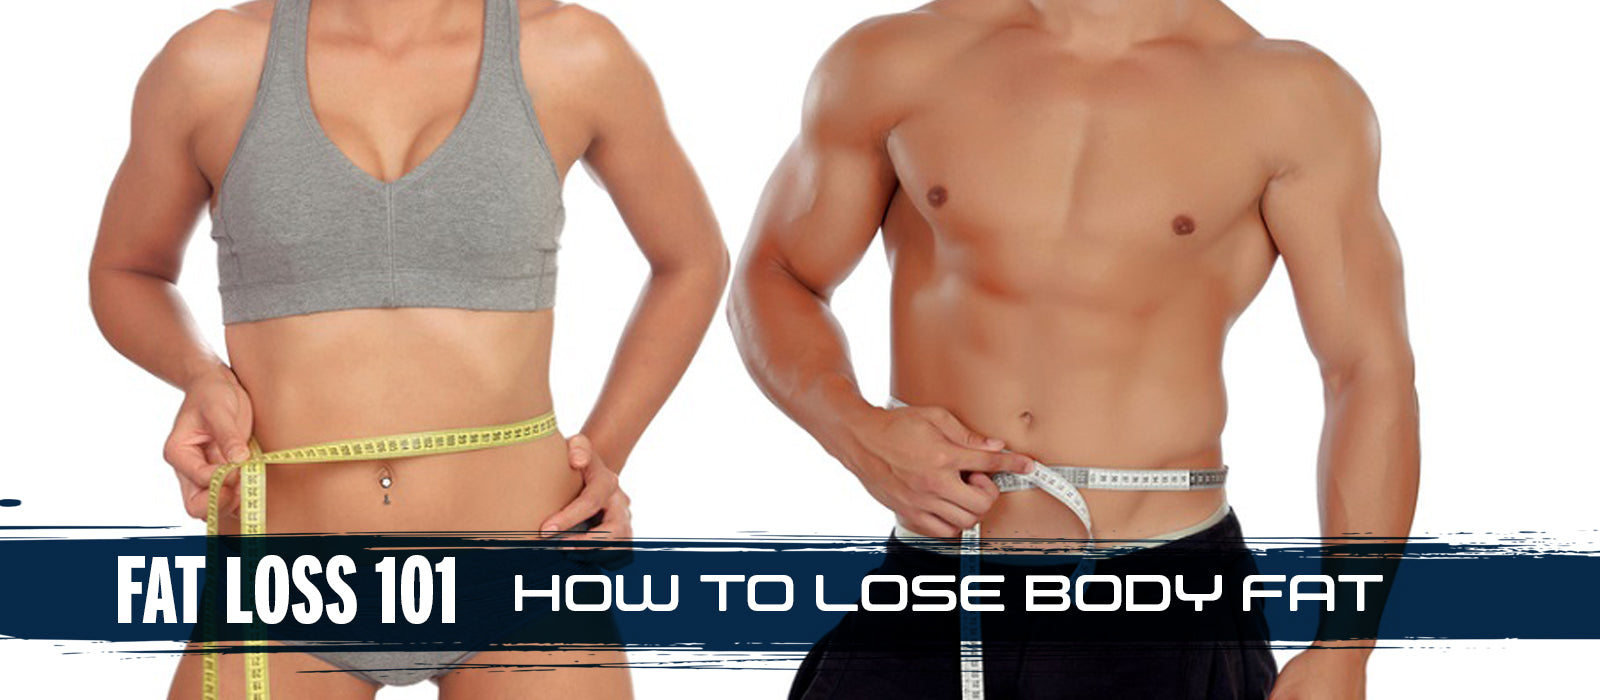 Fat Loss 101: How To Lose Body Fat